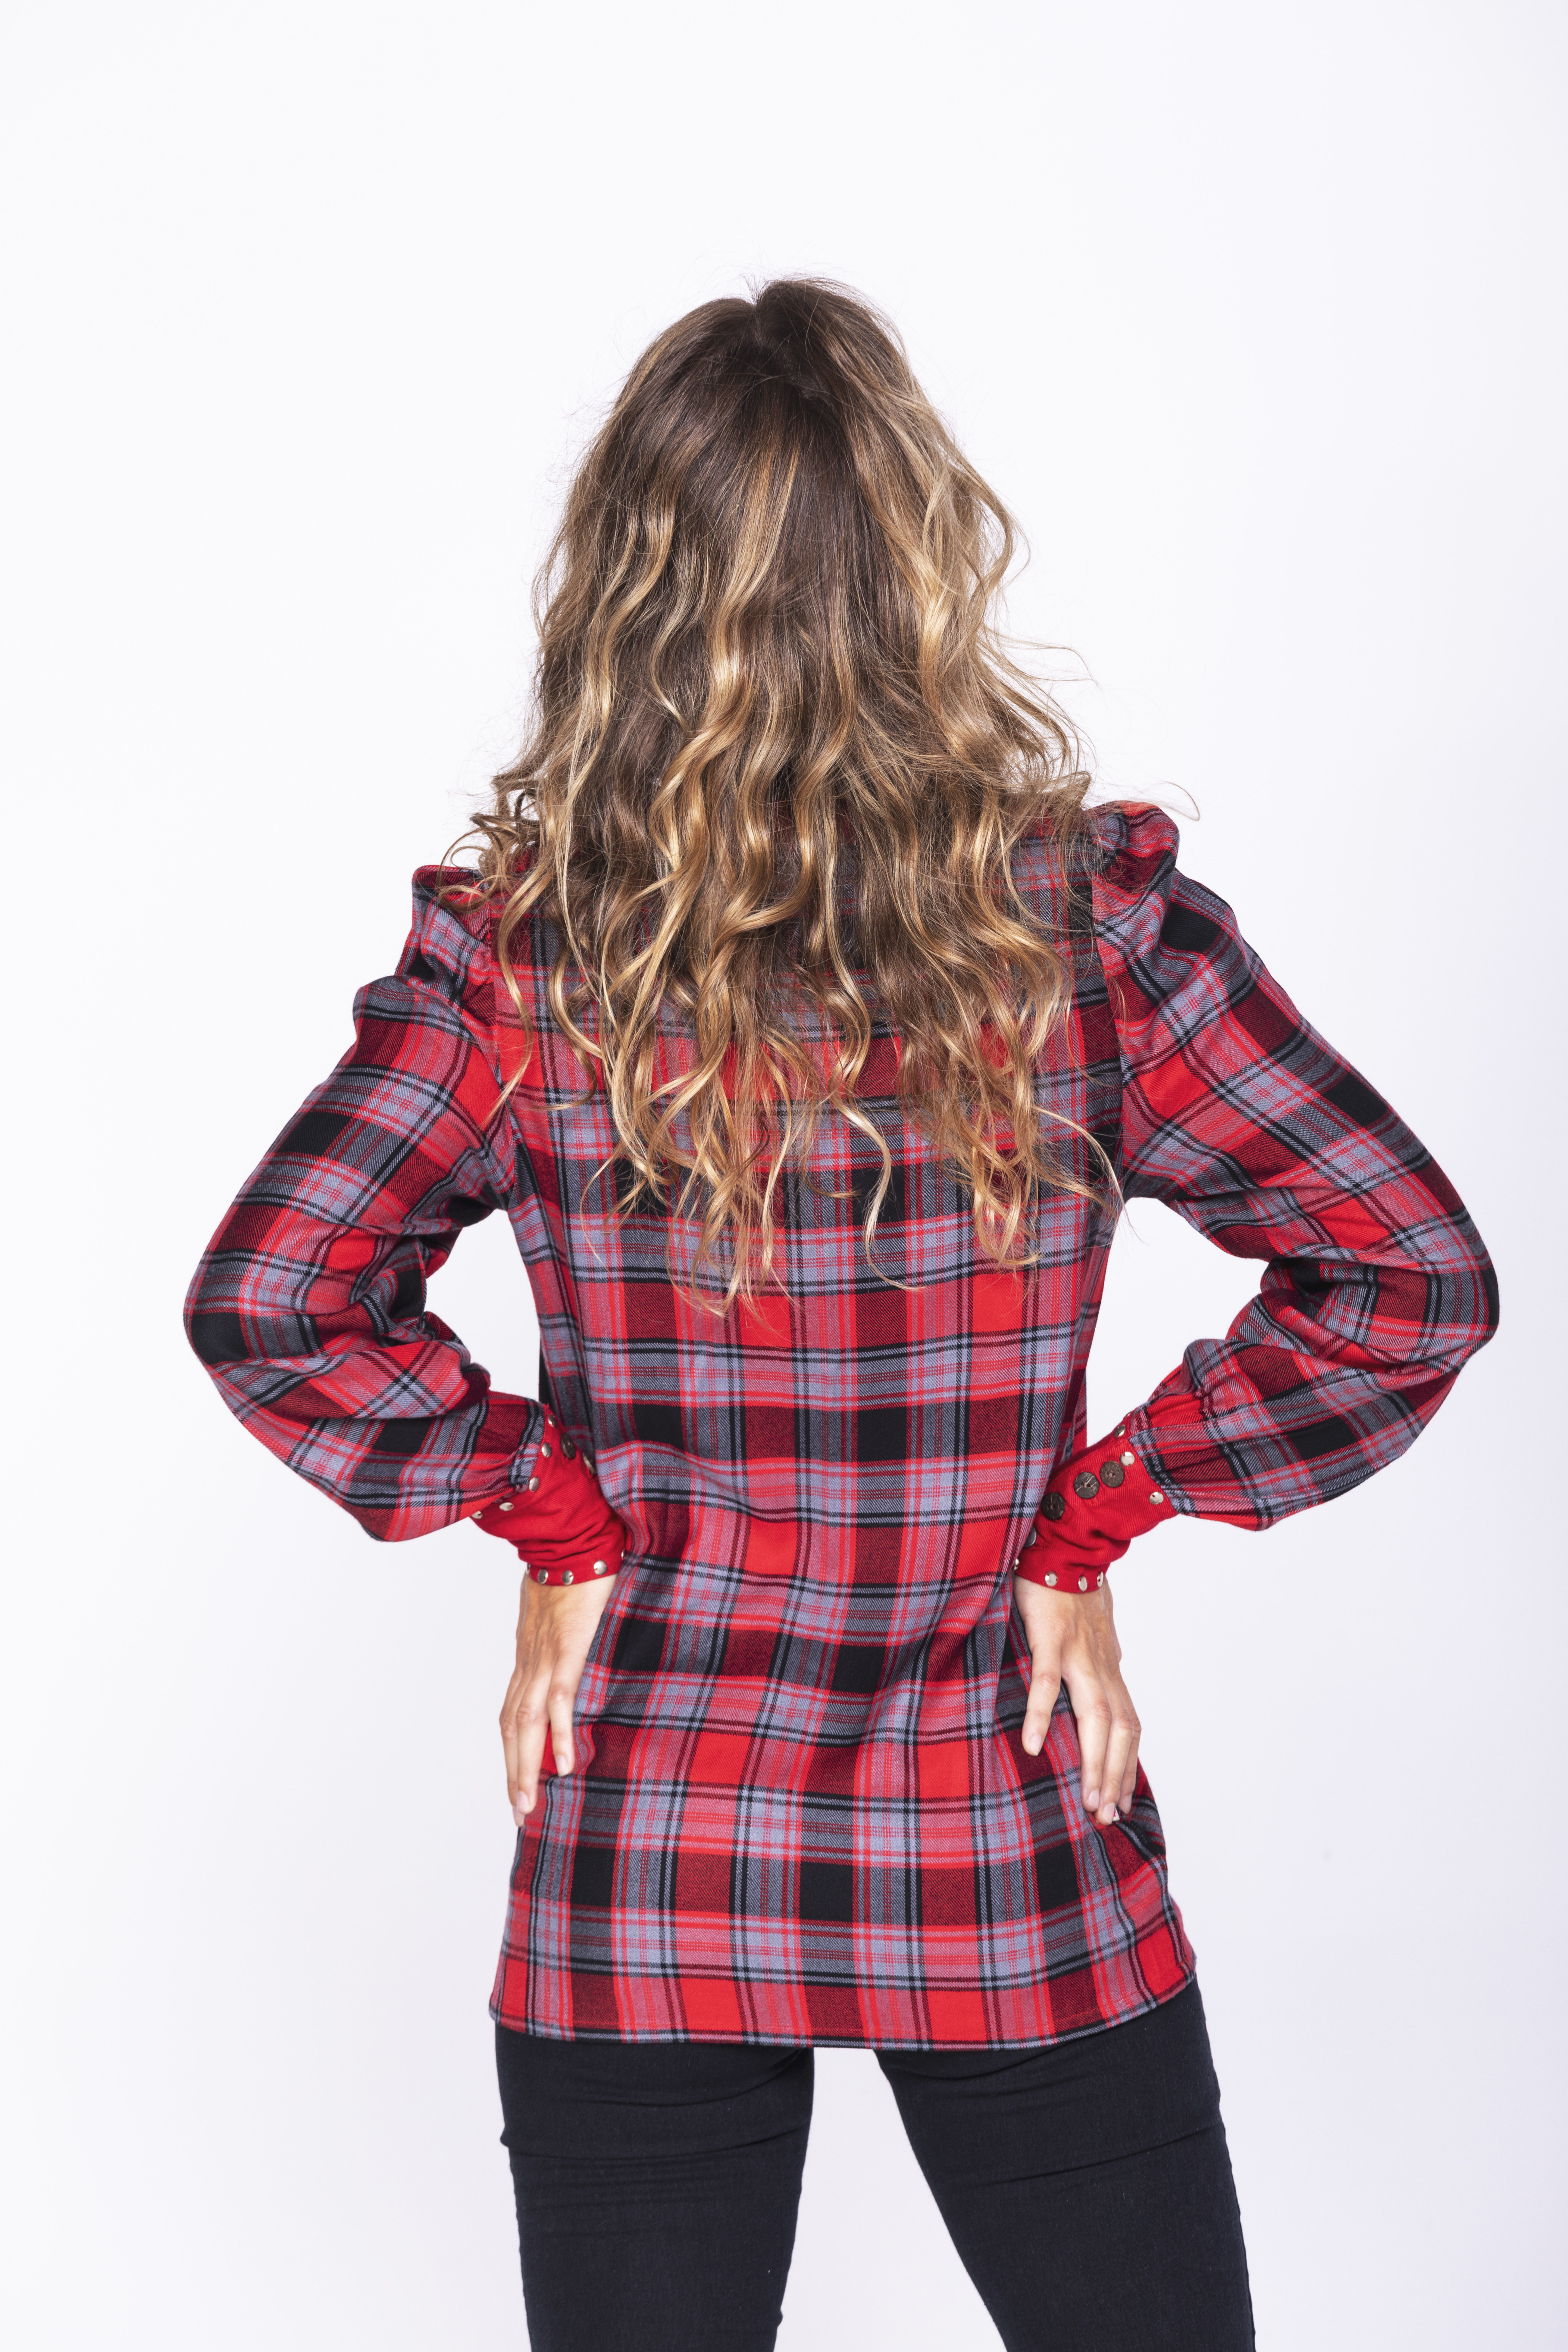 Savage Culture: Rose Red Plaid Criss Cross Tunic Kalingrado SOLD OUT